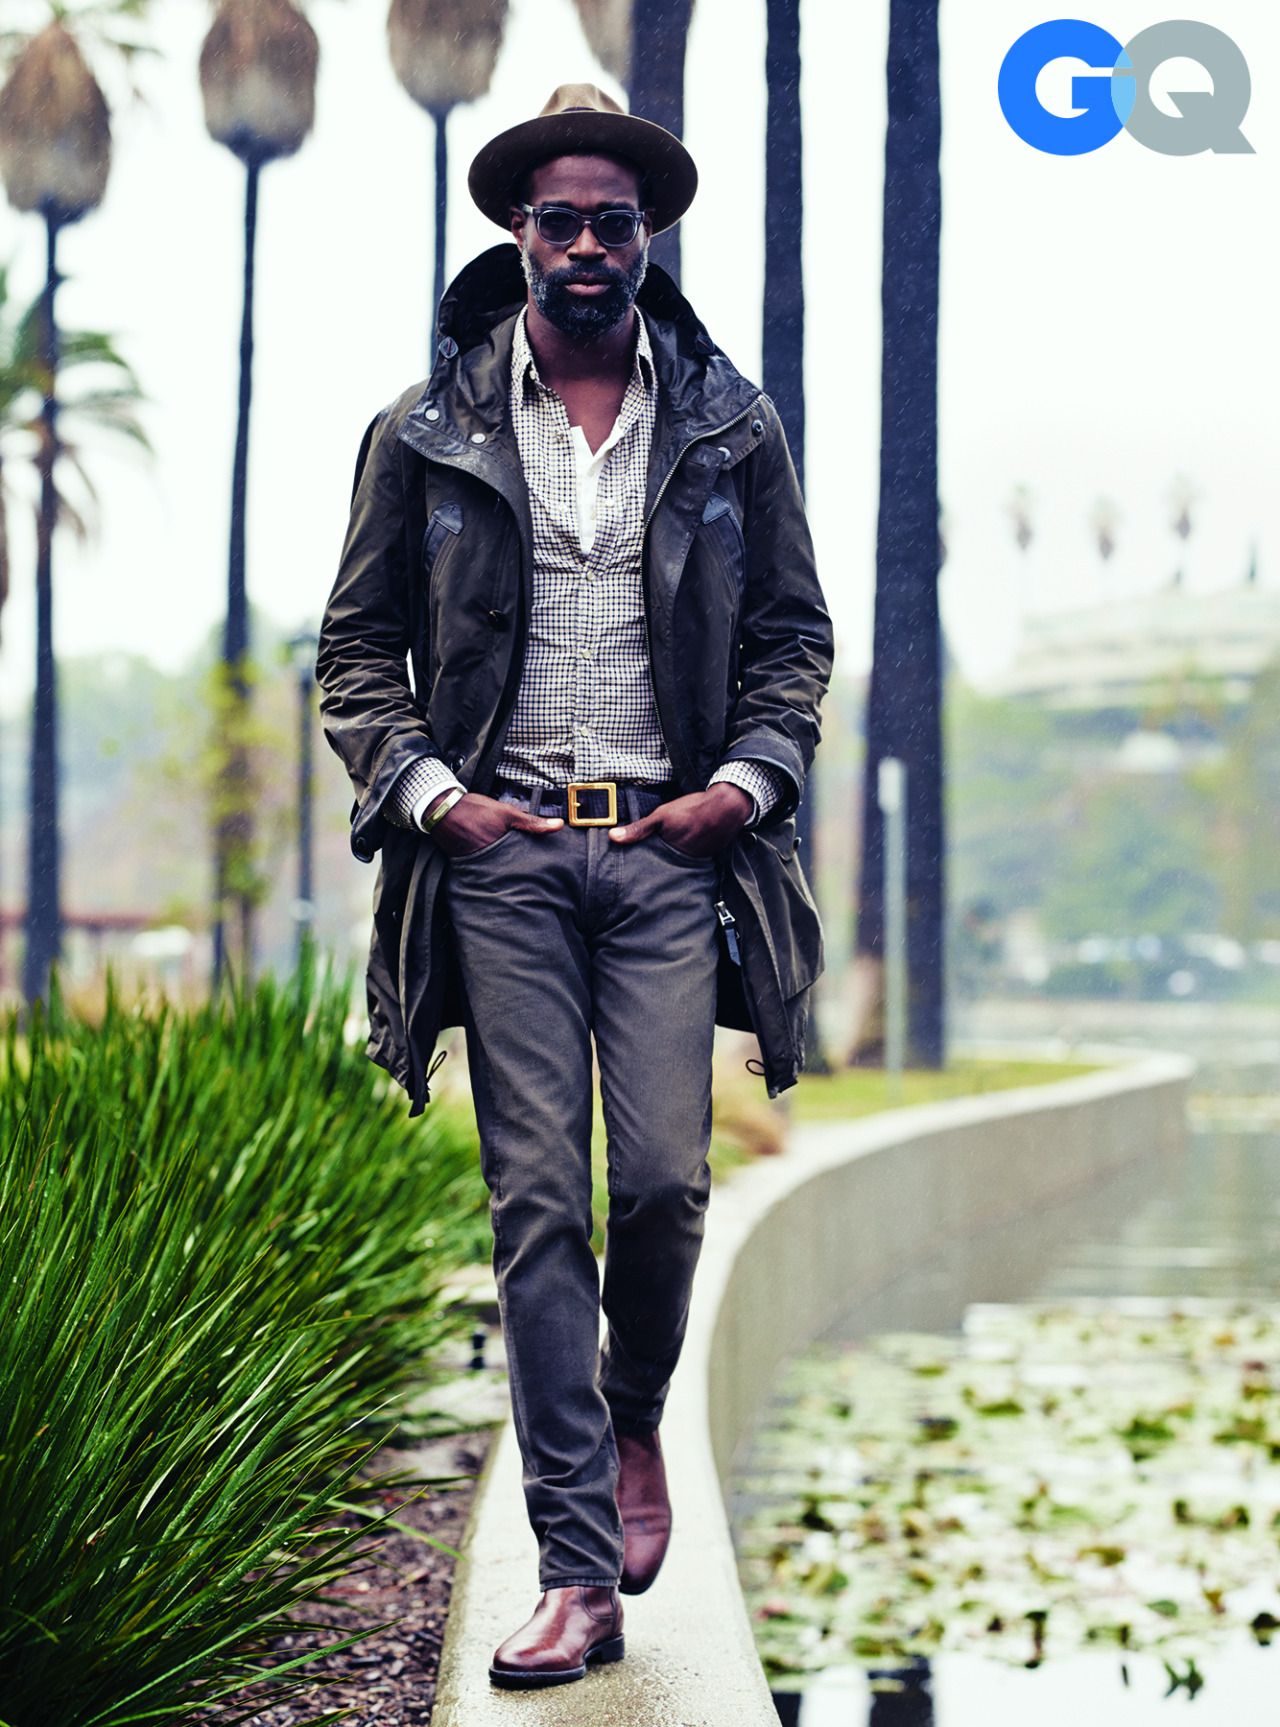 Mens leather gloves gq - Gq Tv On The Radio S Tunde Adebimpe Wears This Spring S Best Rain Gear Well Helloooooo There